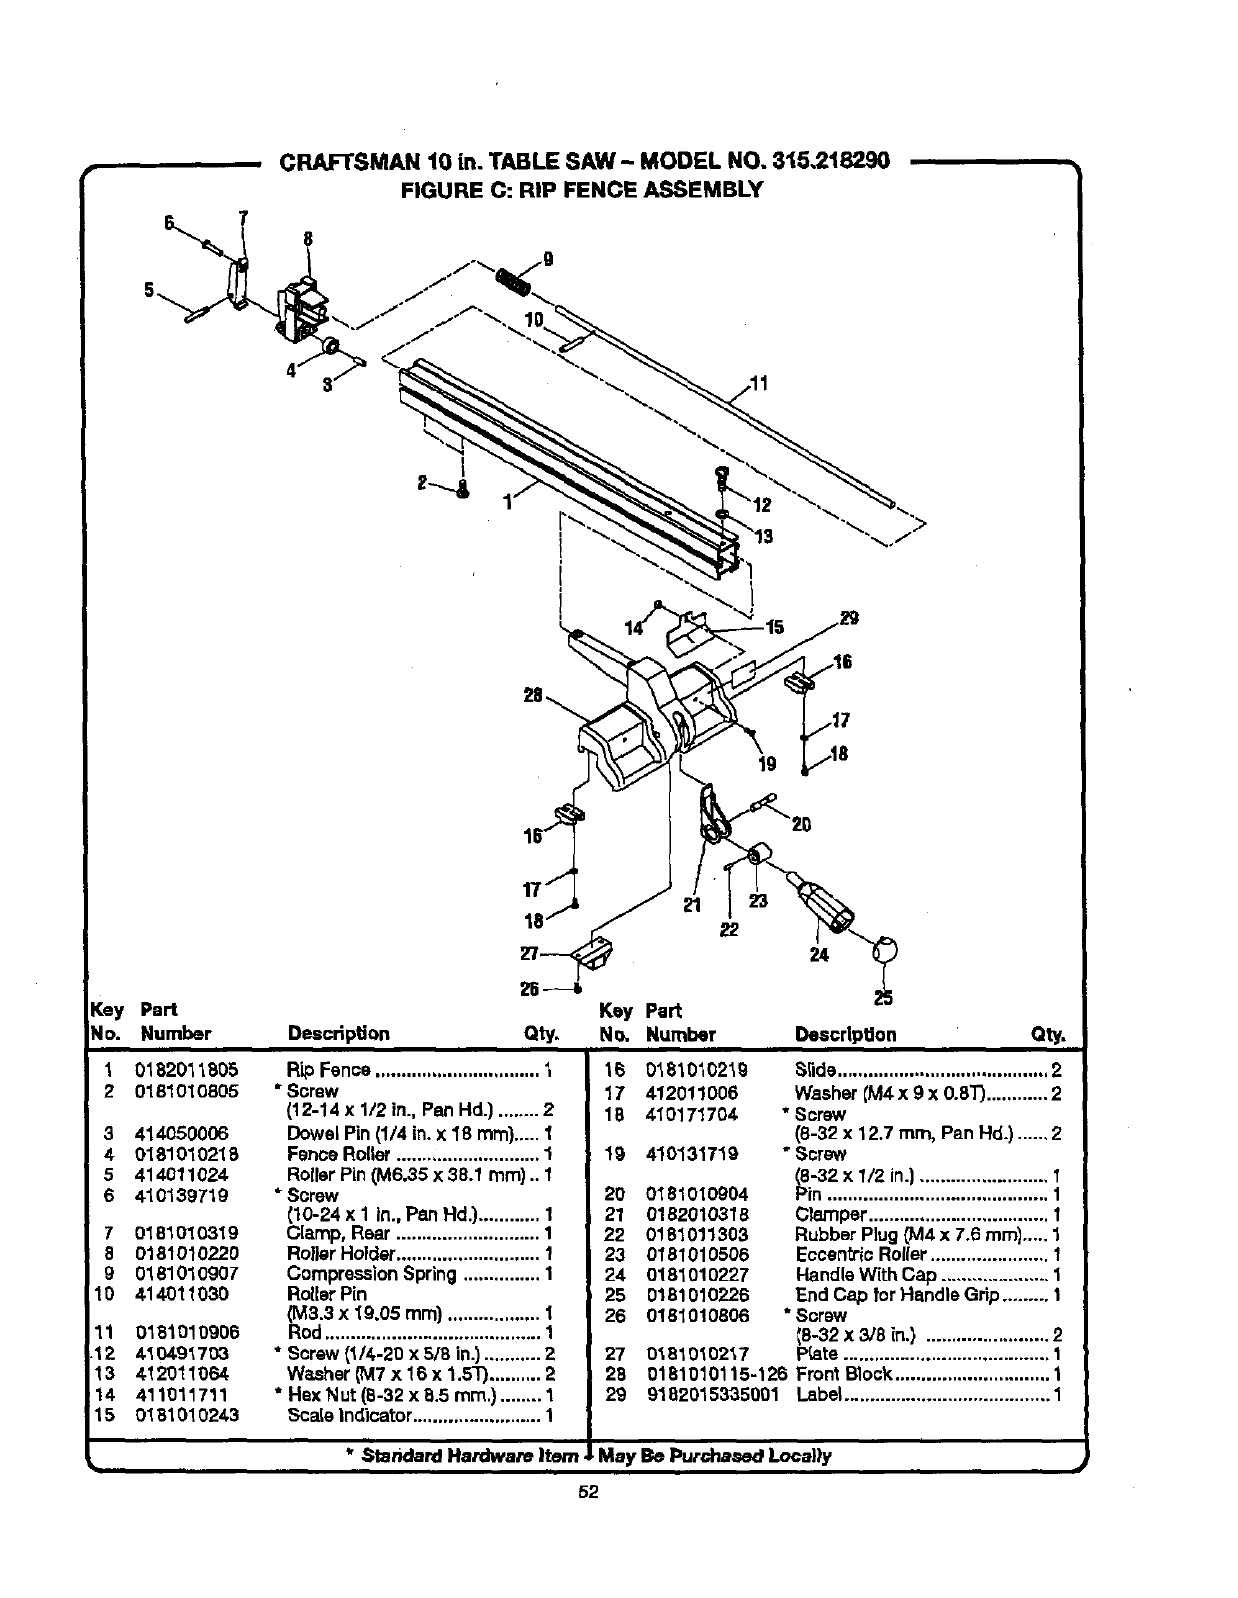 Page 52 of Craftsman Saw 315.21829 User Guide